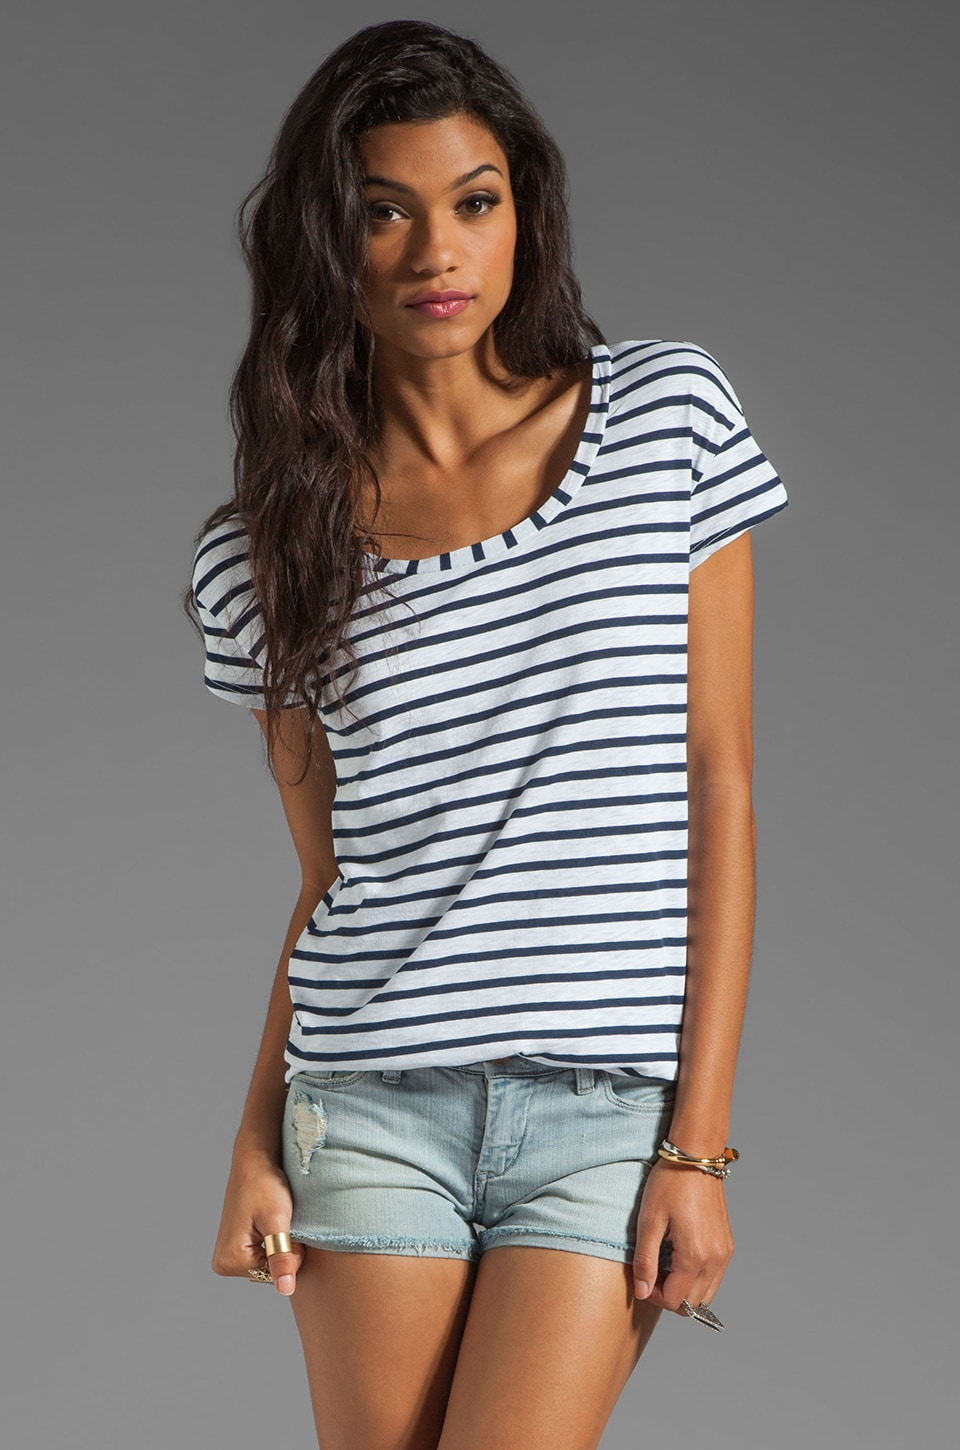 Splendid Miami Stripe Tee in Paper